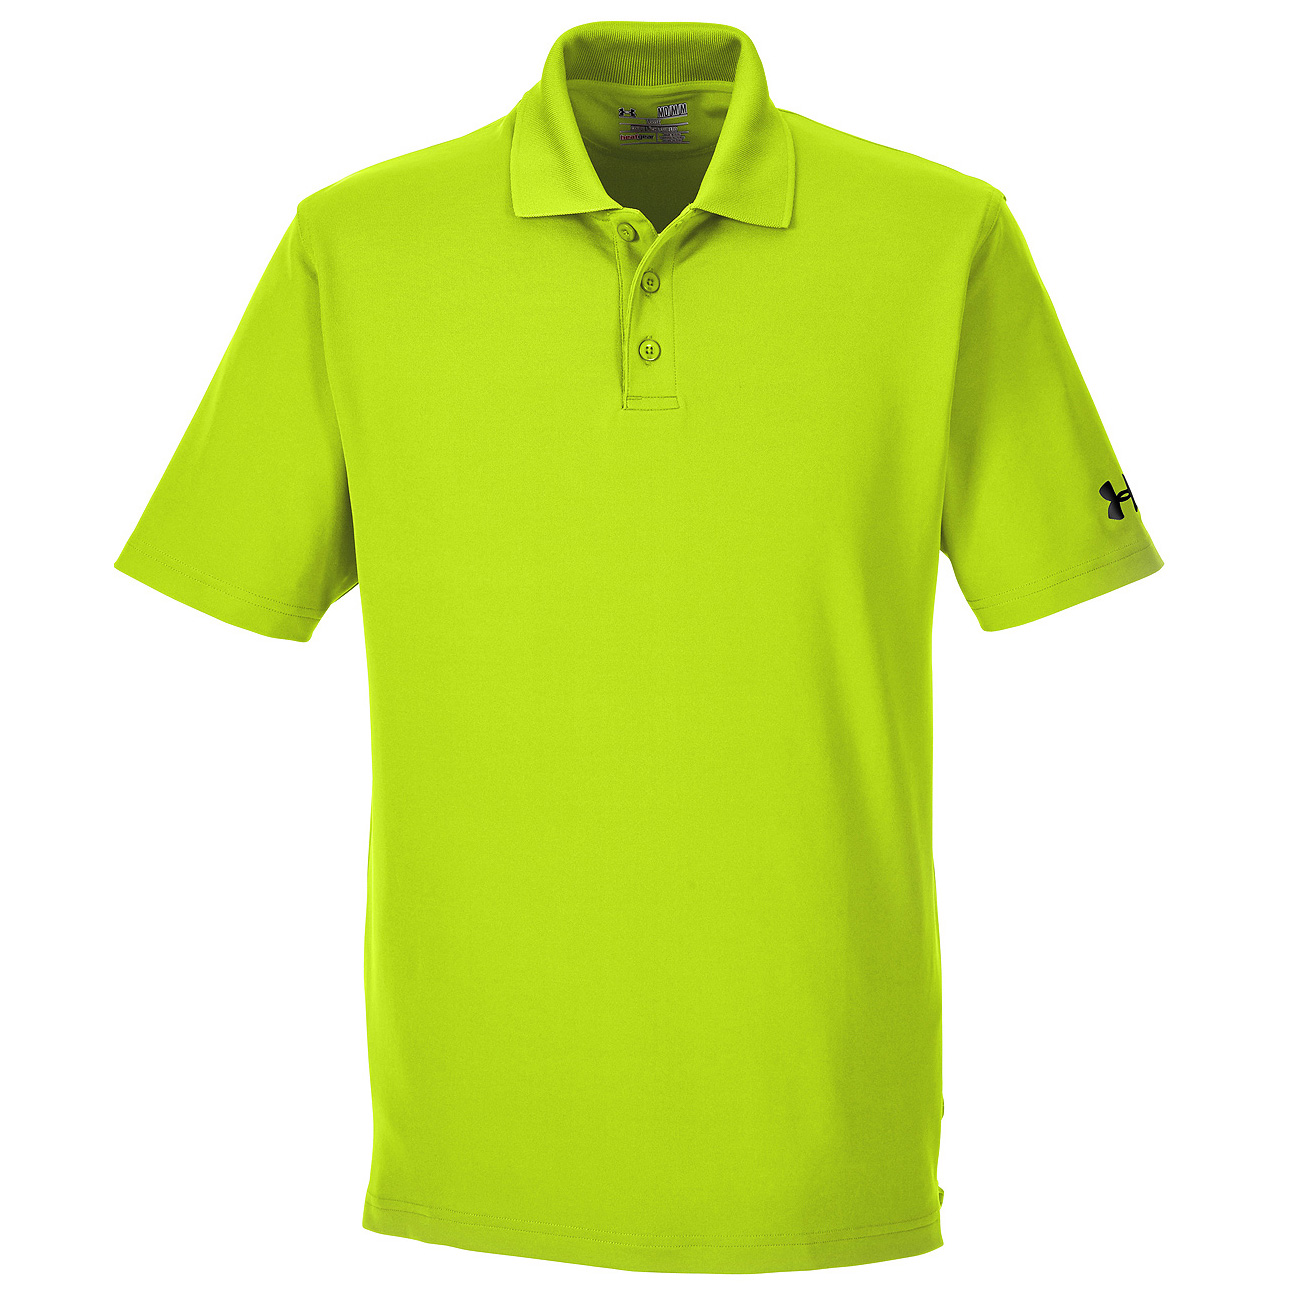 a4c2bc129 Under Armour Men's Corp Performance Polo. Home / Shop / Golf Shirts / Polos  / Under Armour Men's Corp Performance Polo ‹ ...